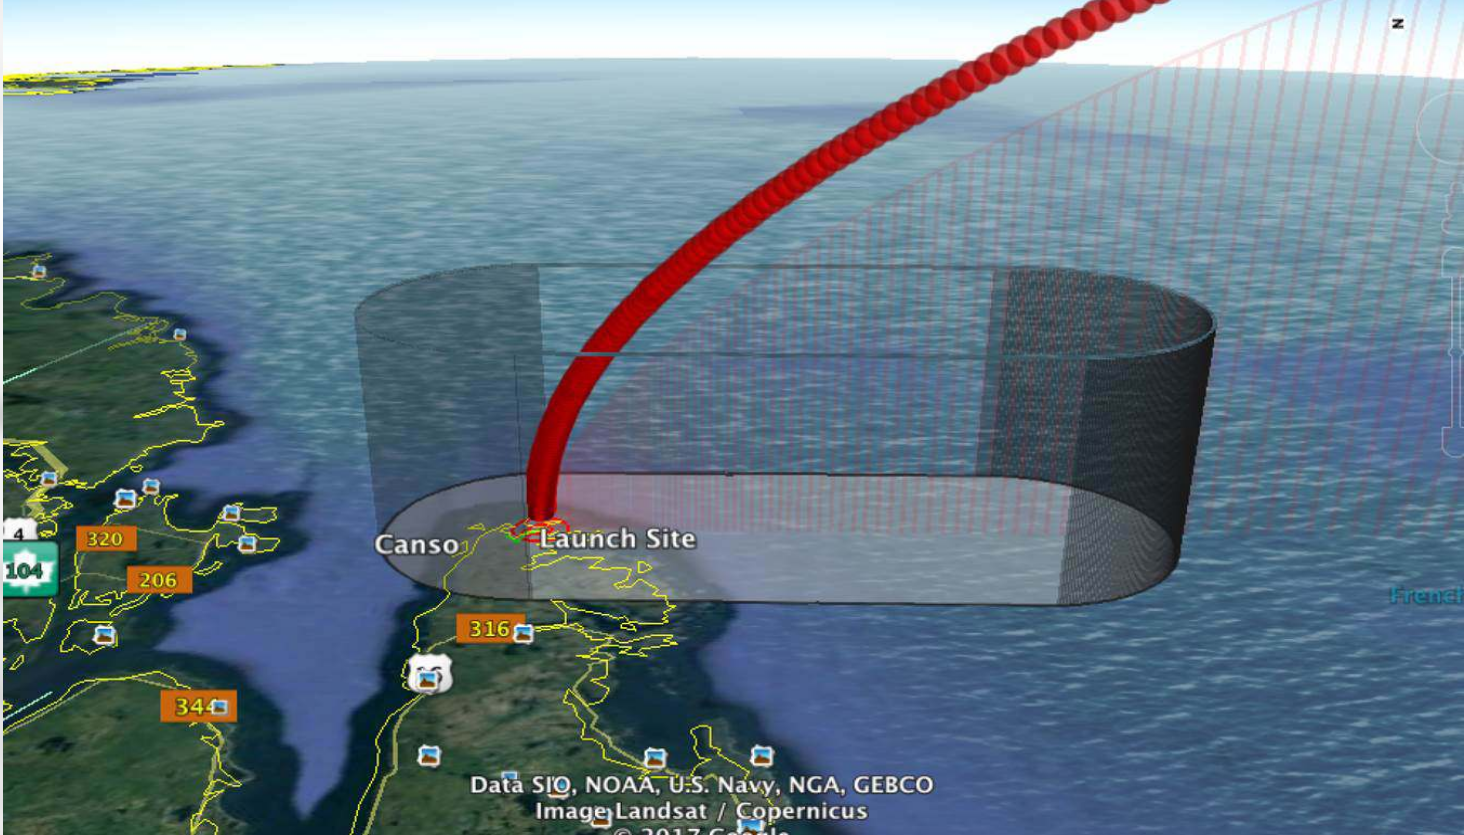 The launch trajectory would be specific to each particular mission. However, all launches would be conducted to the south over the Atlantic Ocean, similar to what is depicted below